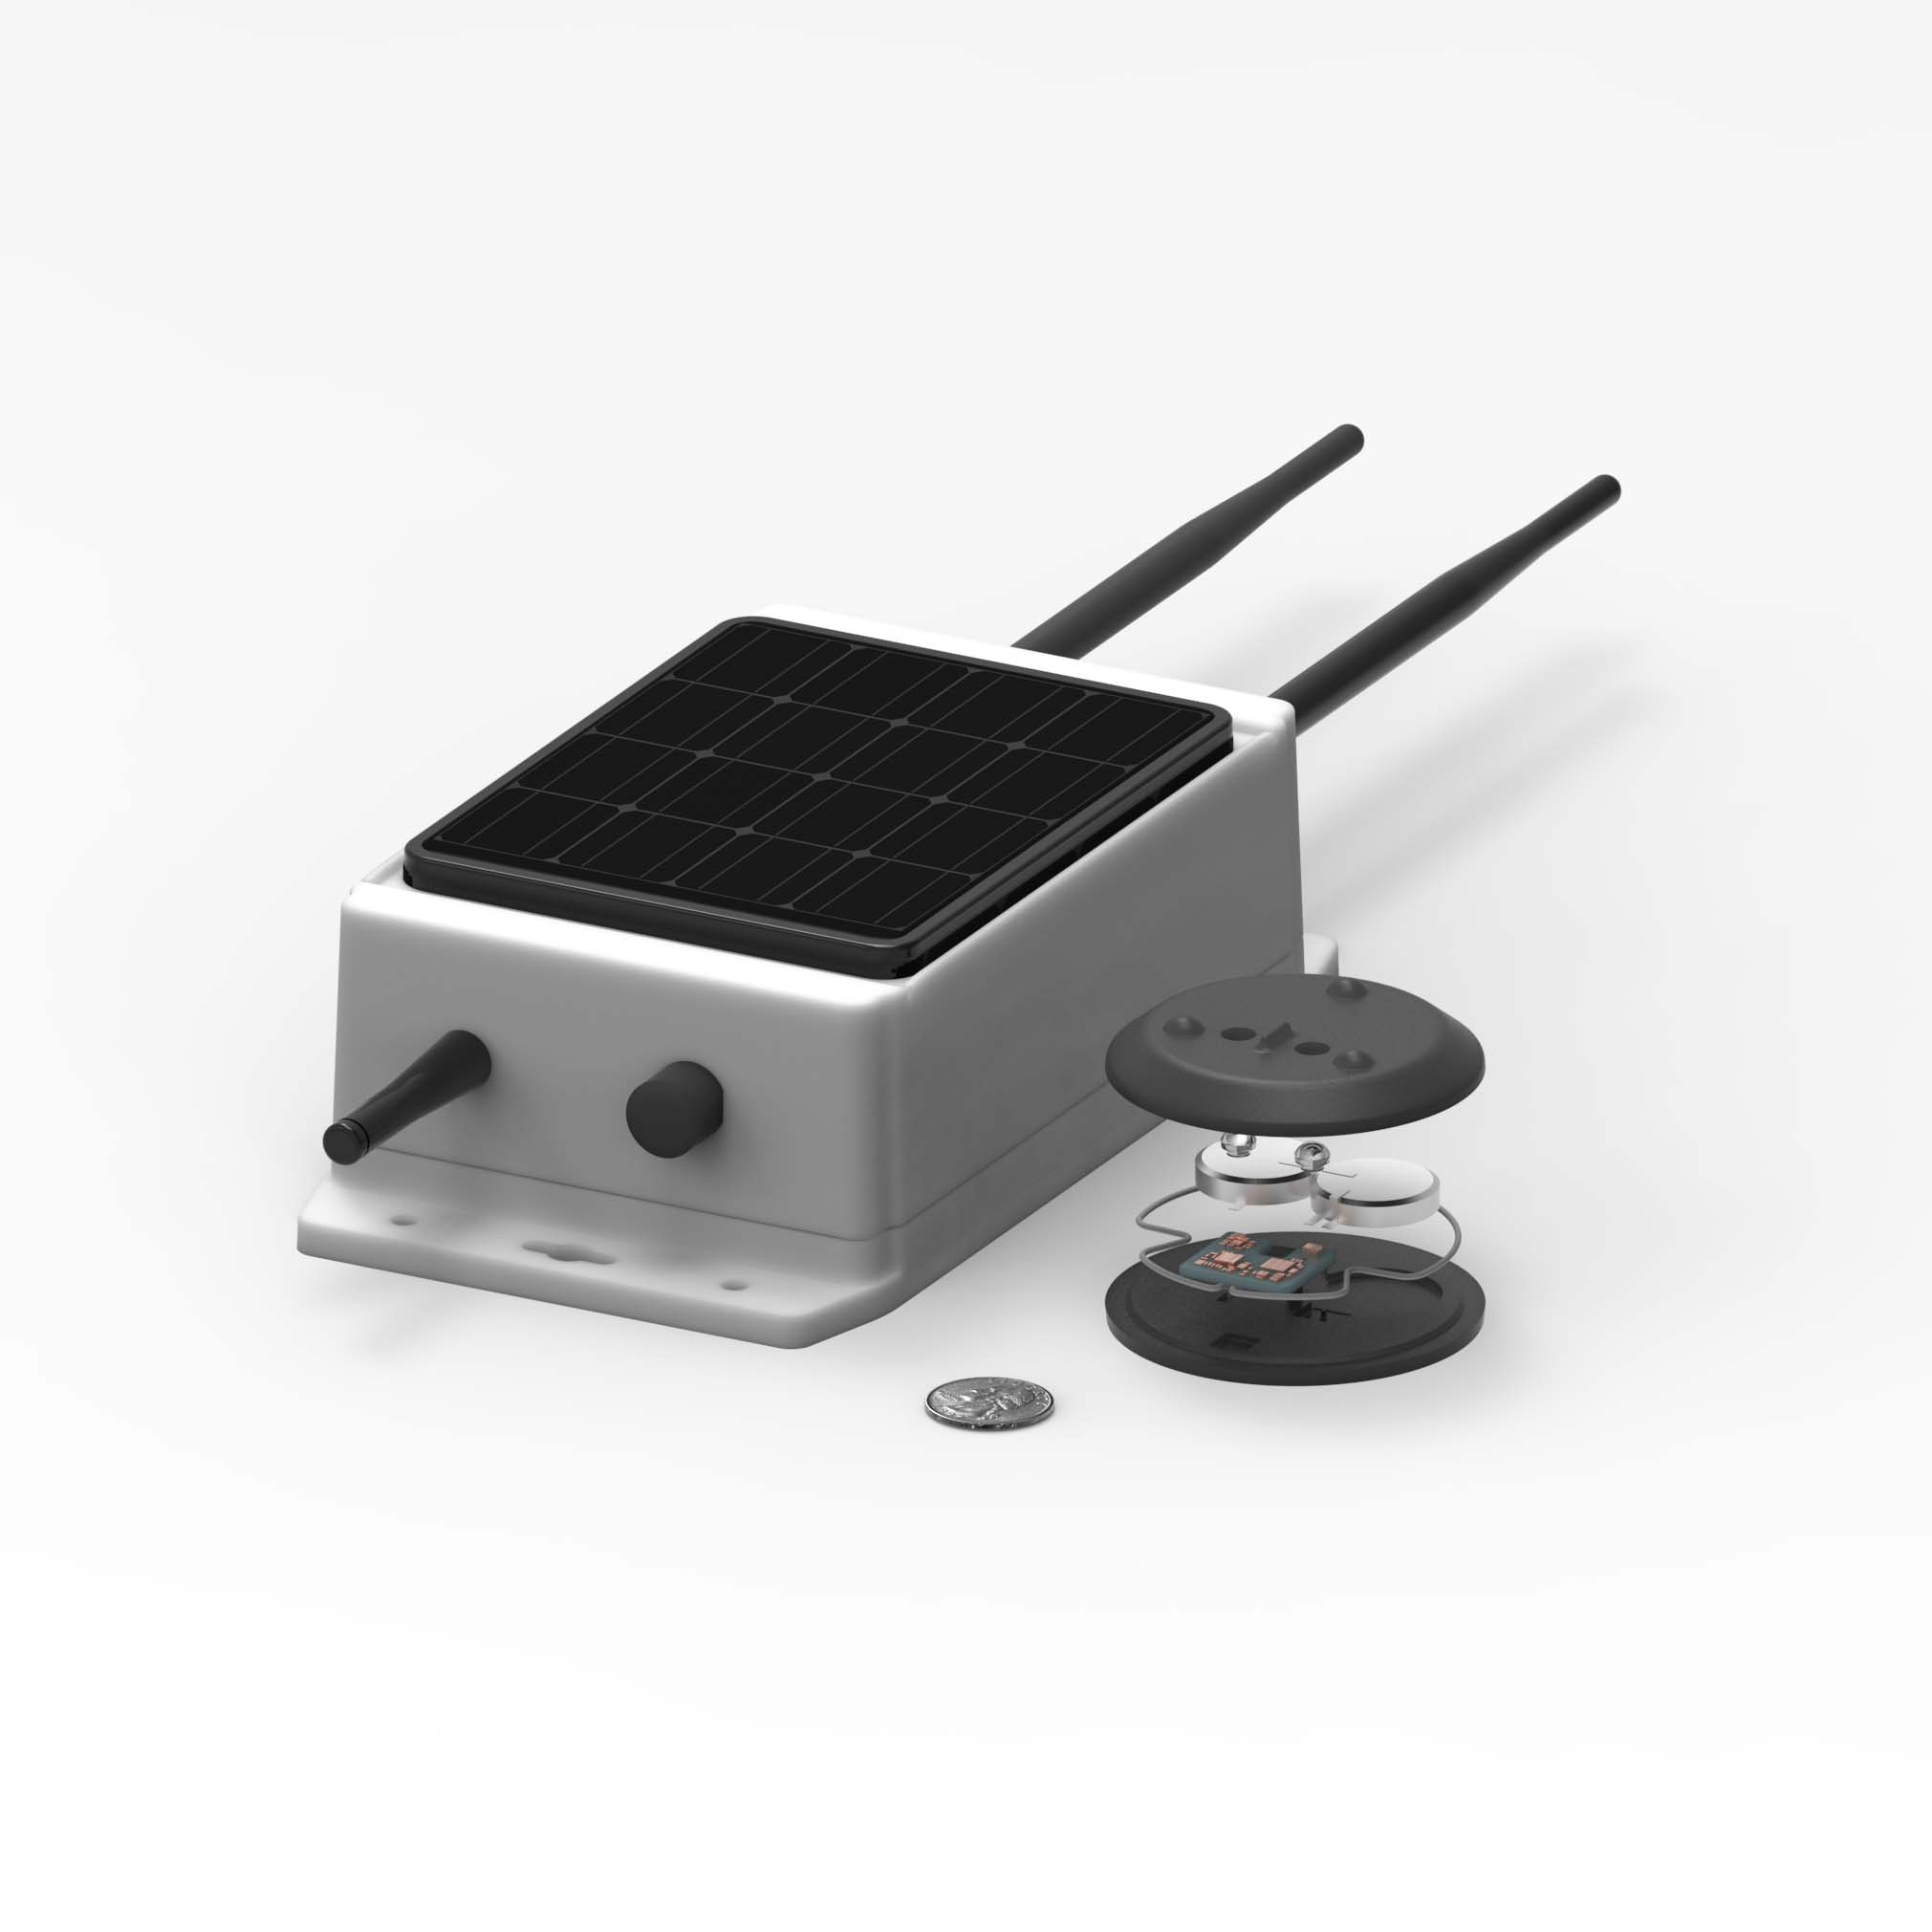 A wireless pebble system